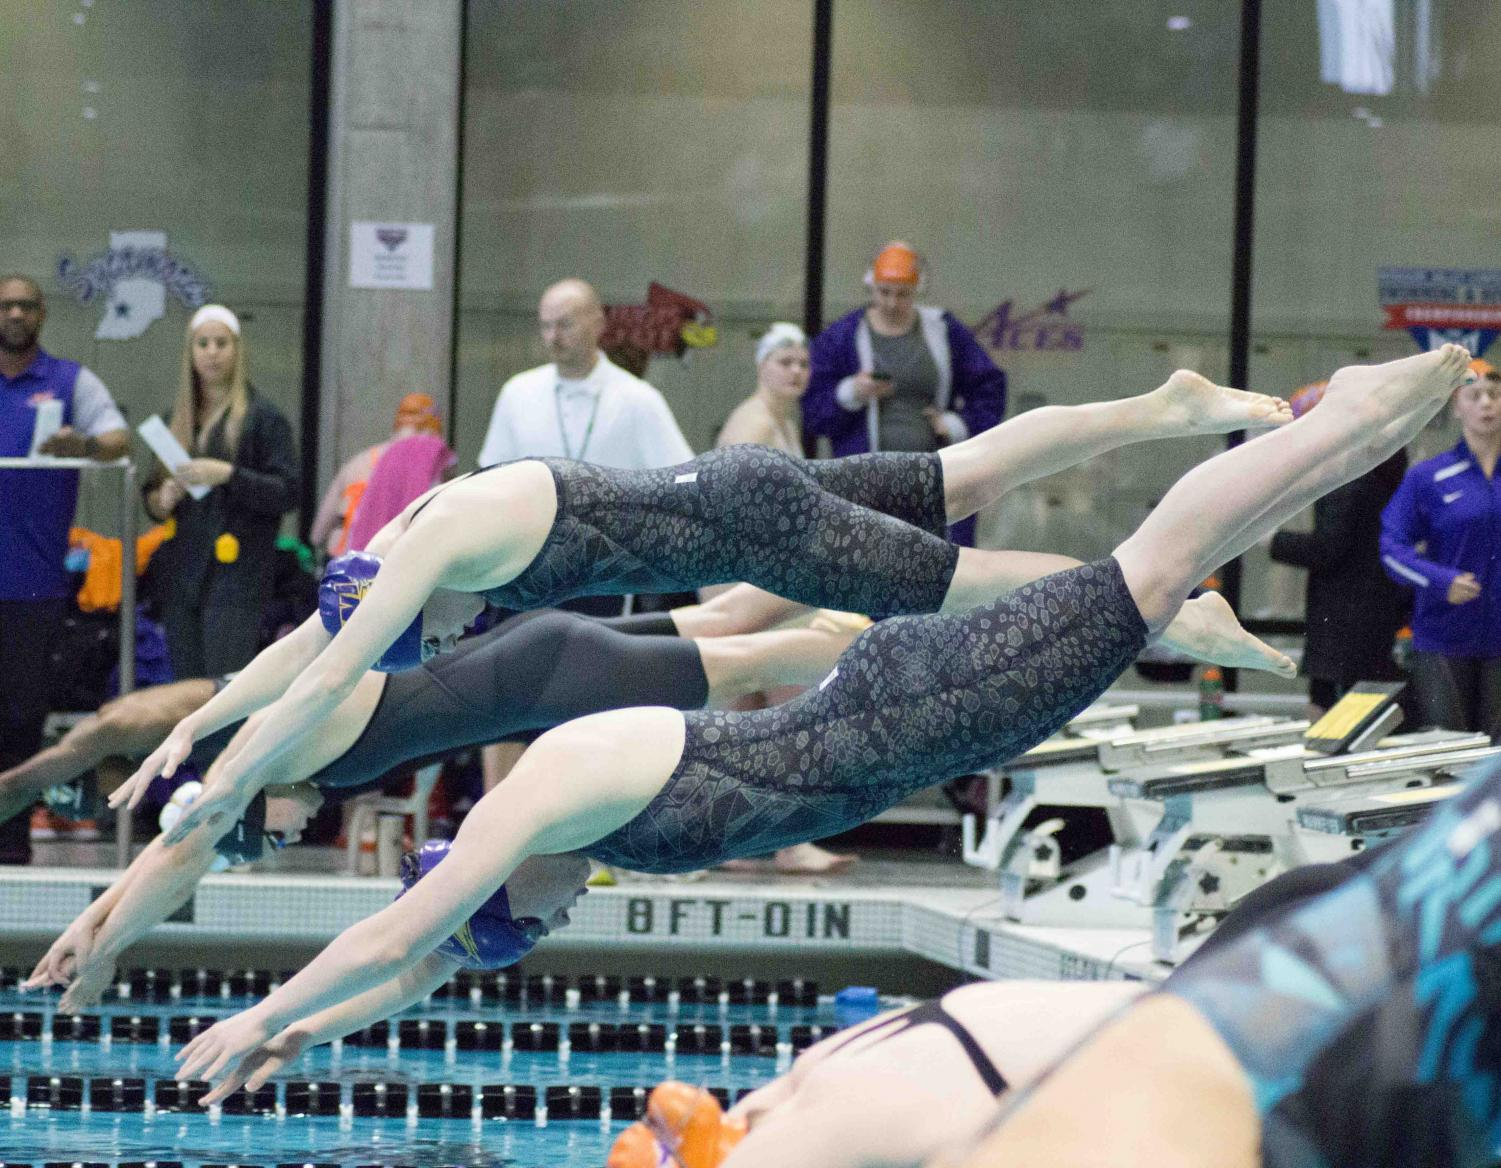 UNI swimmers launch from the starting blocks during last season's MVC Championship meet in Iowa City. The Panthers finished third at the meet under first year head coach Nick Lakin.